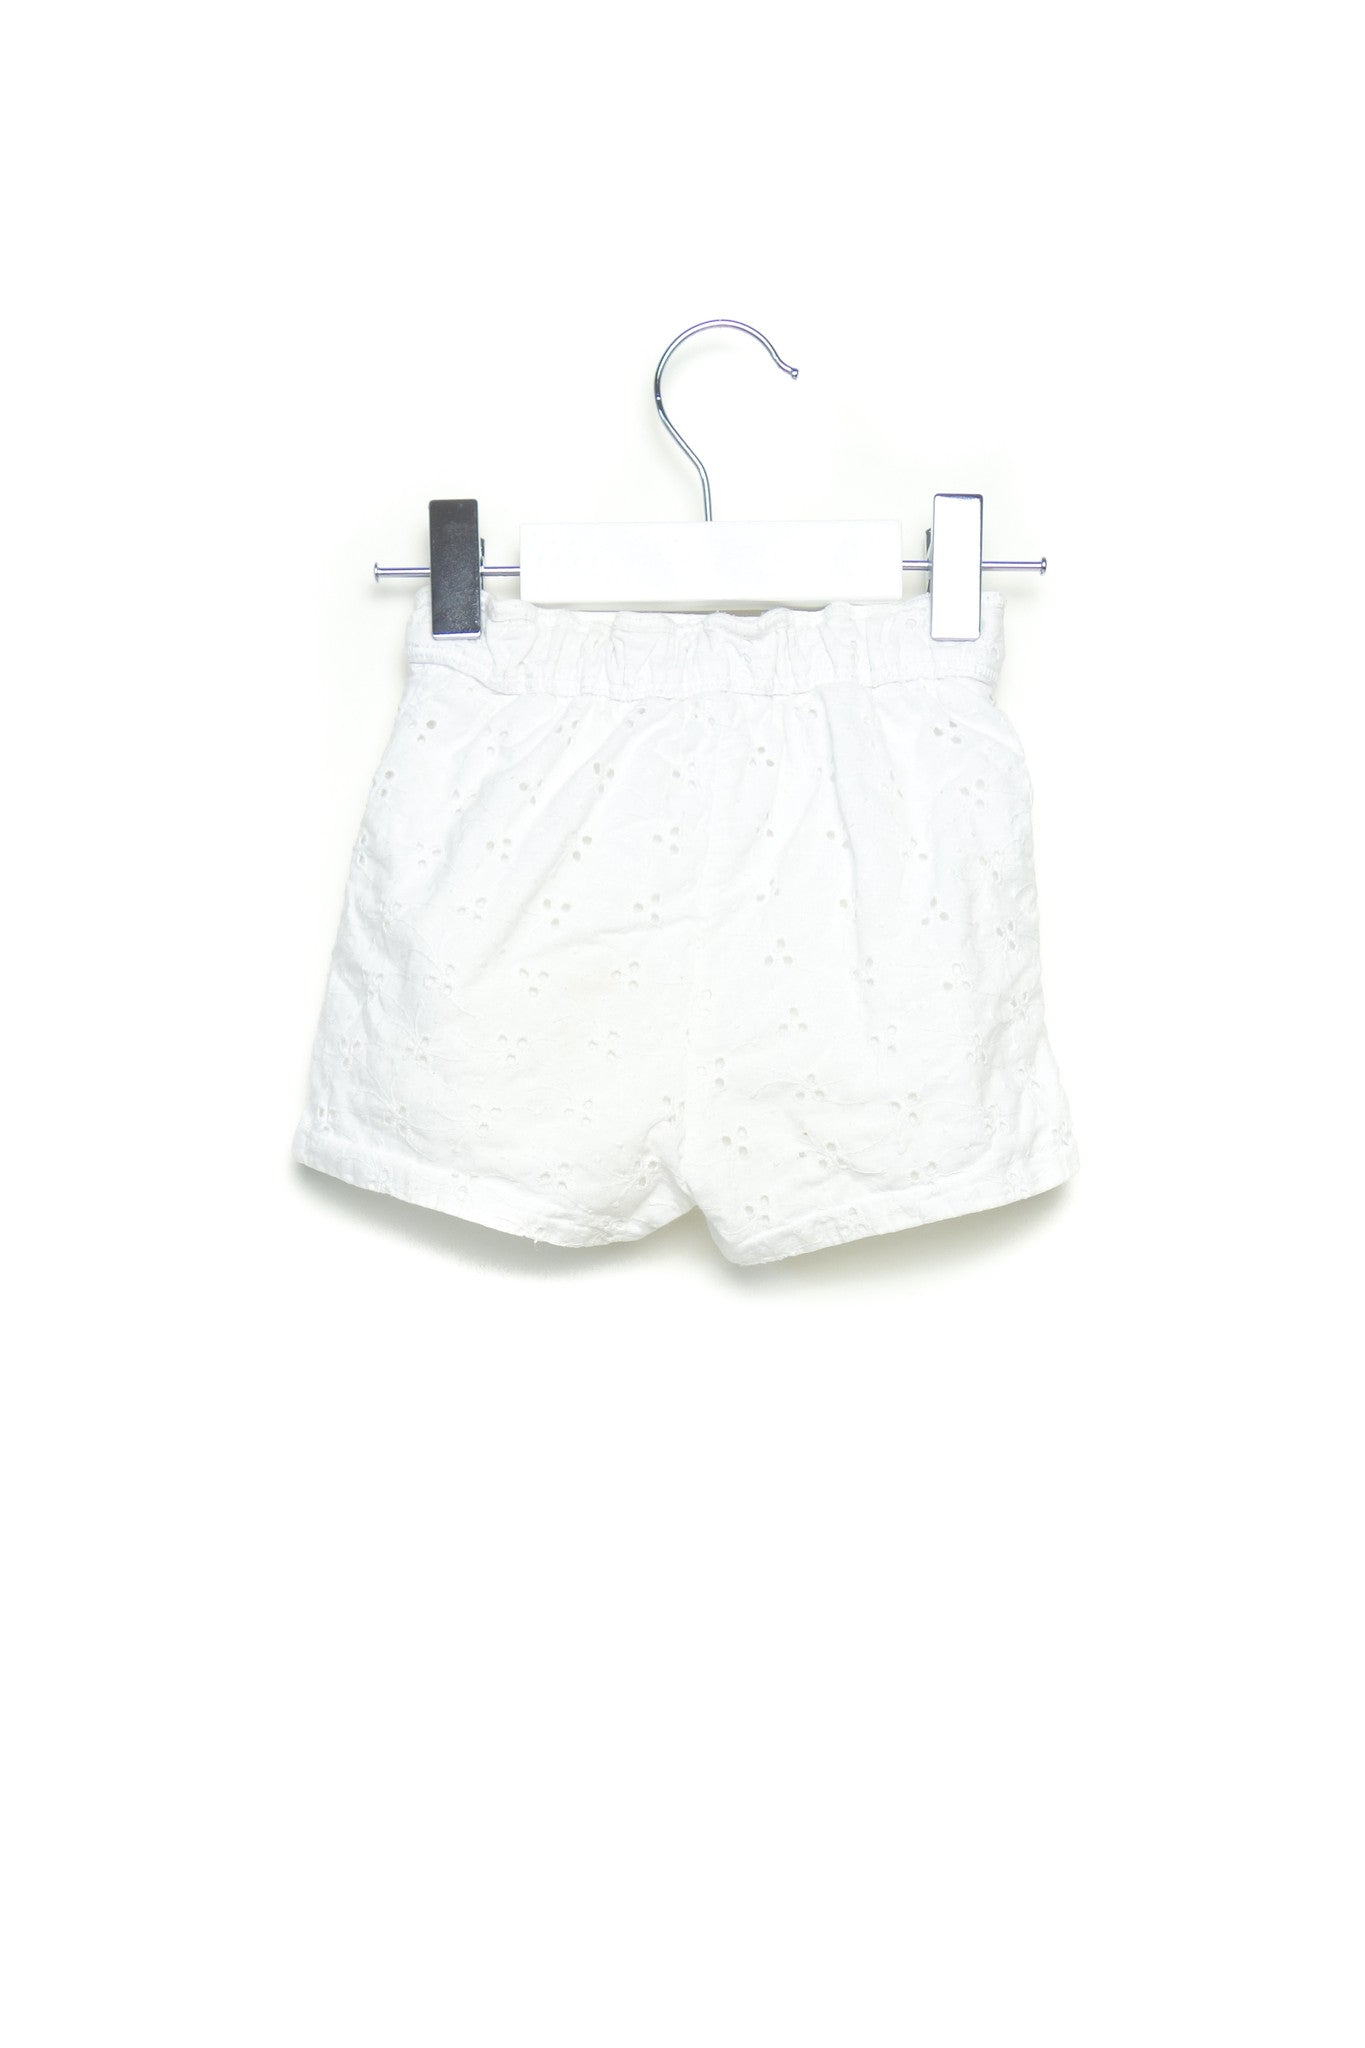 10001566~Shorts 6M, Burberry at Retykle - Online Baby & Kids Clothing Up to 90% Off